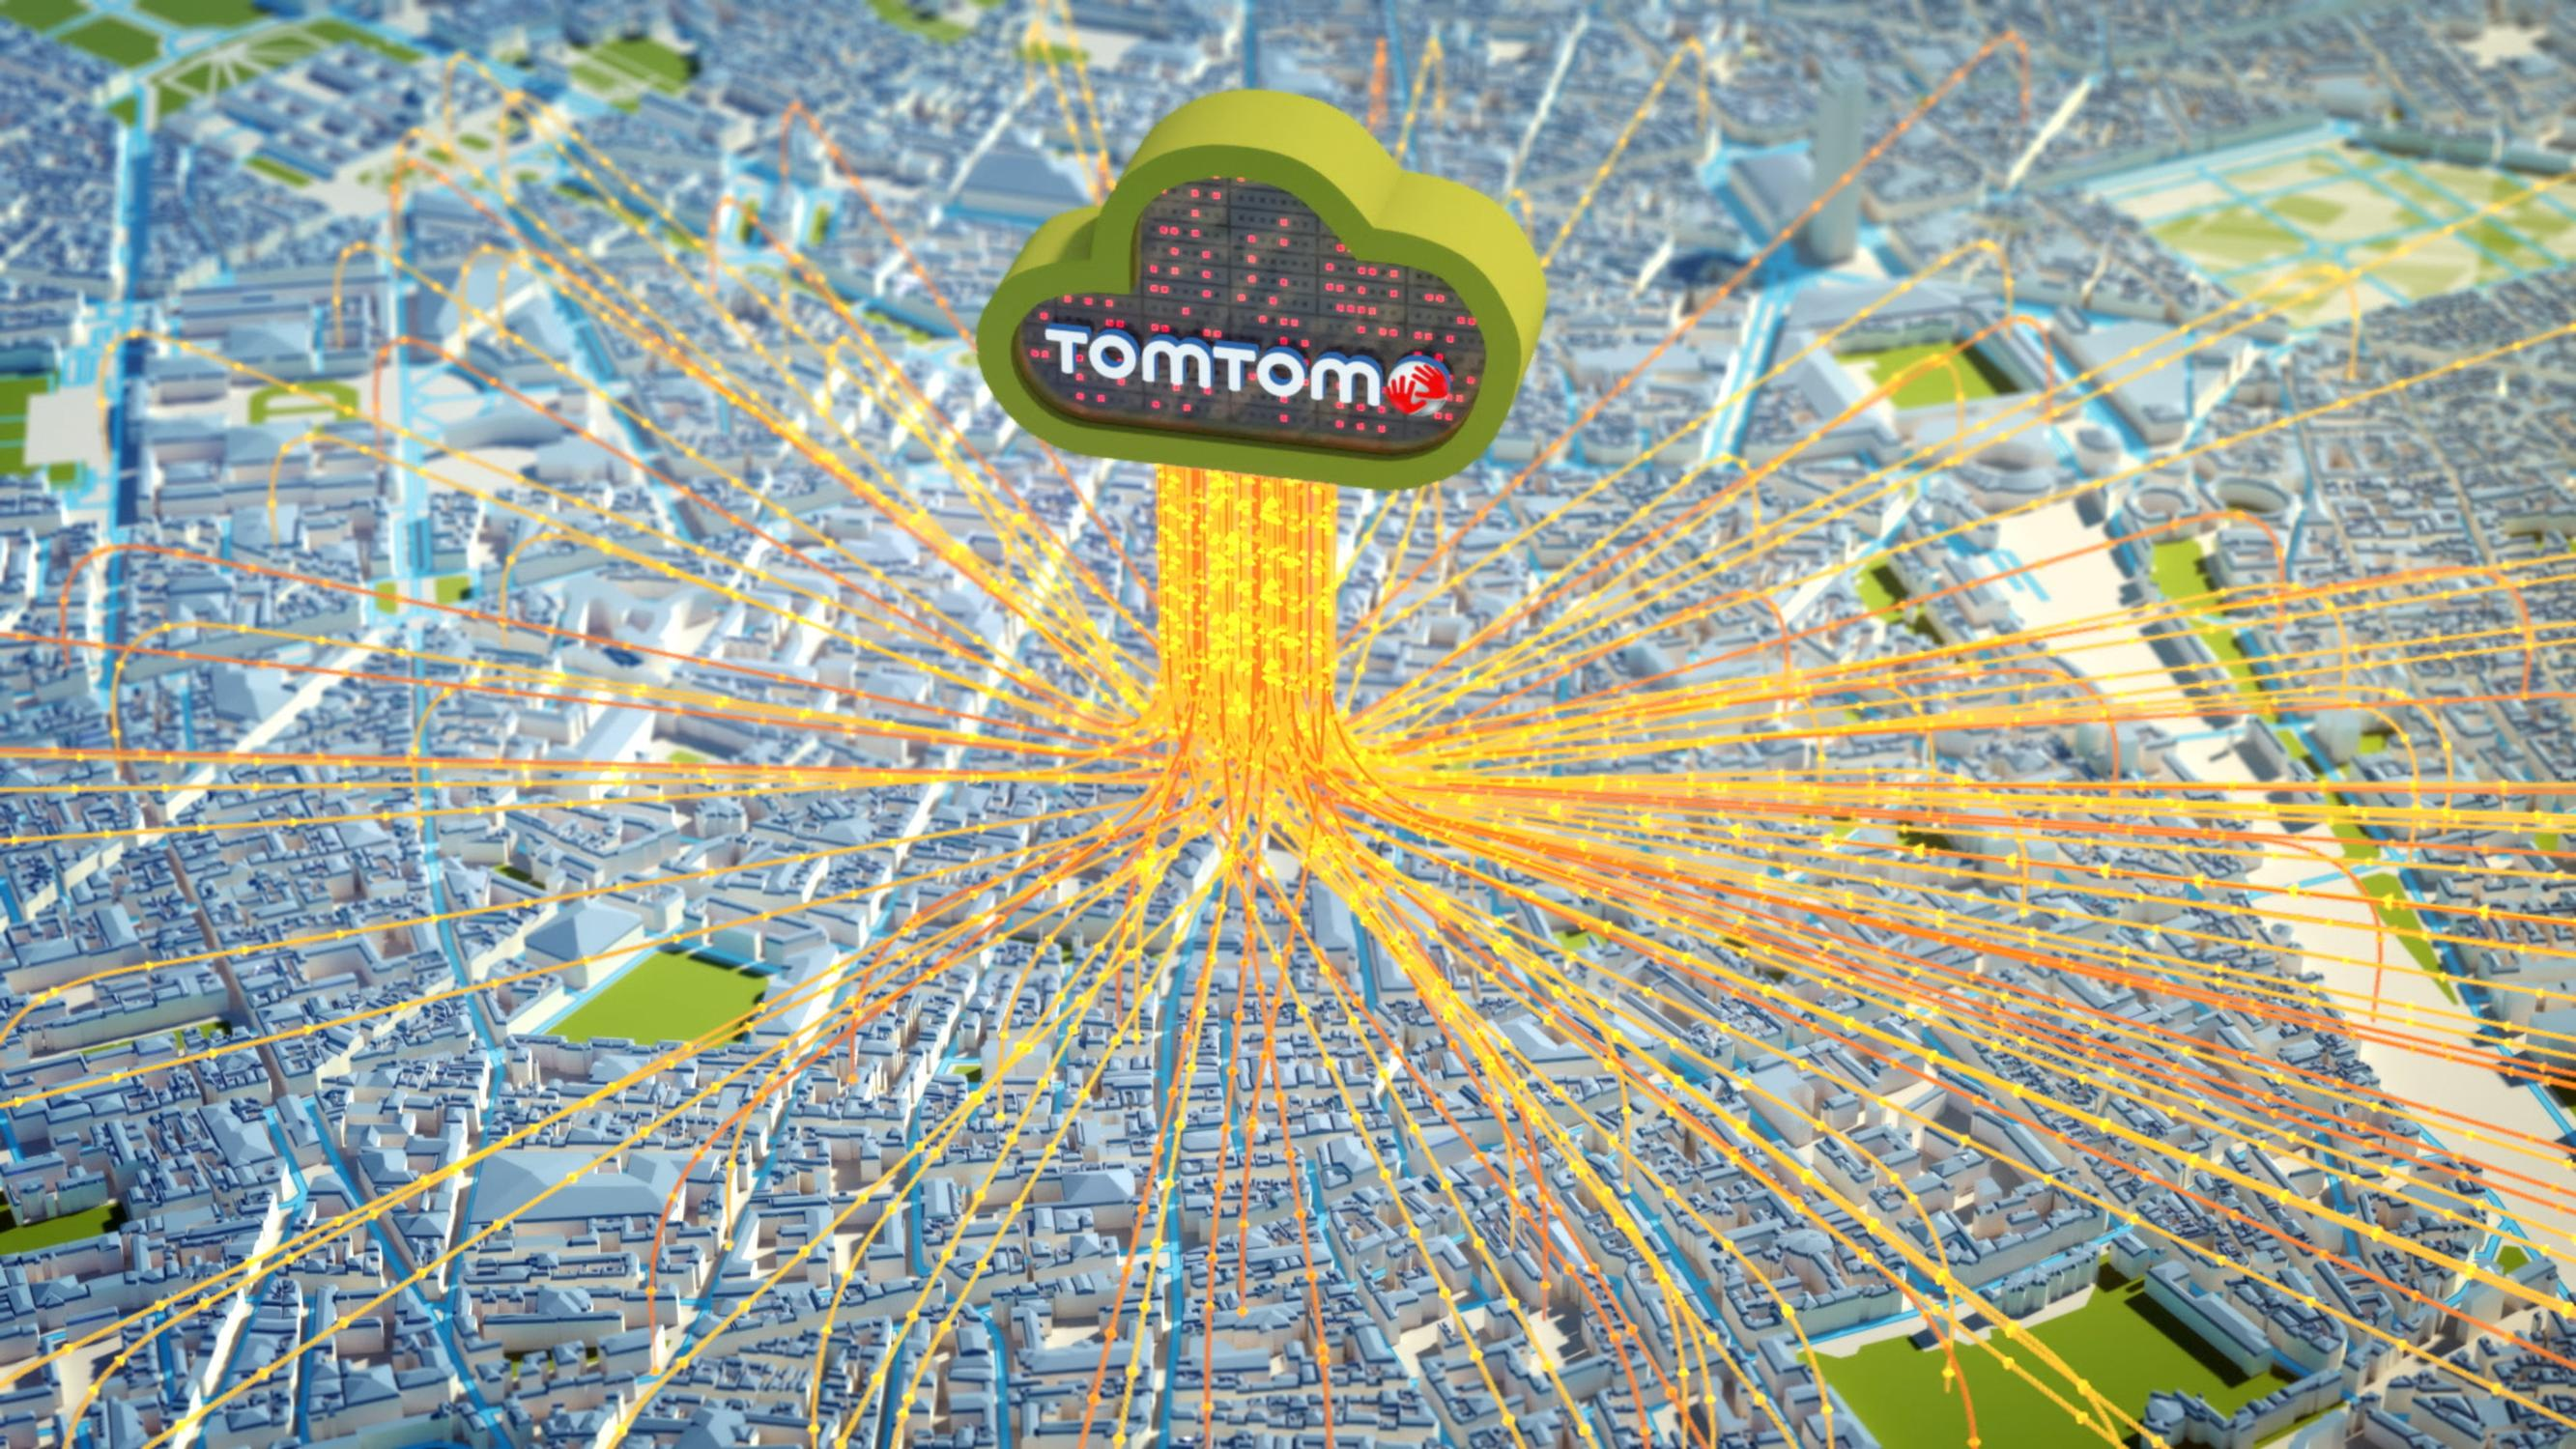 TomTom launches on-street parking guidance service